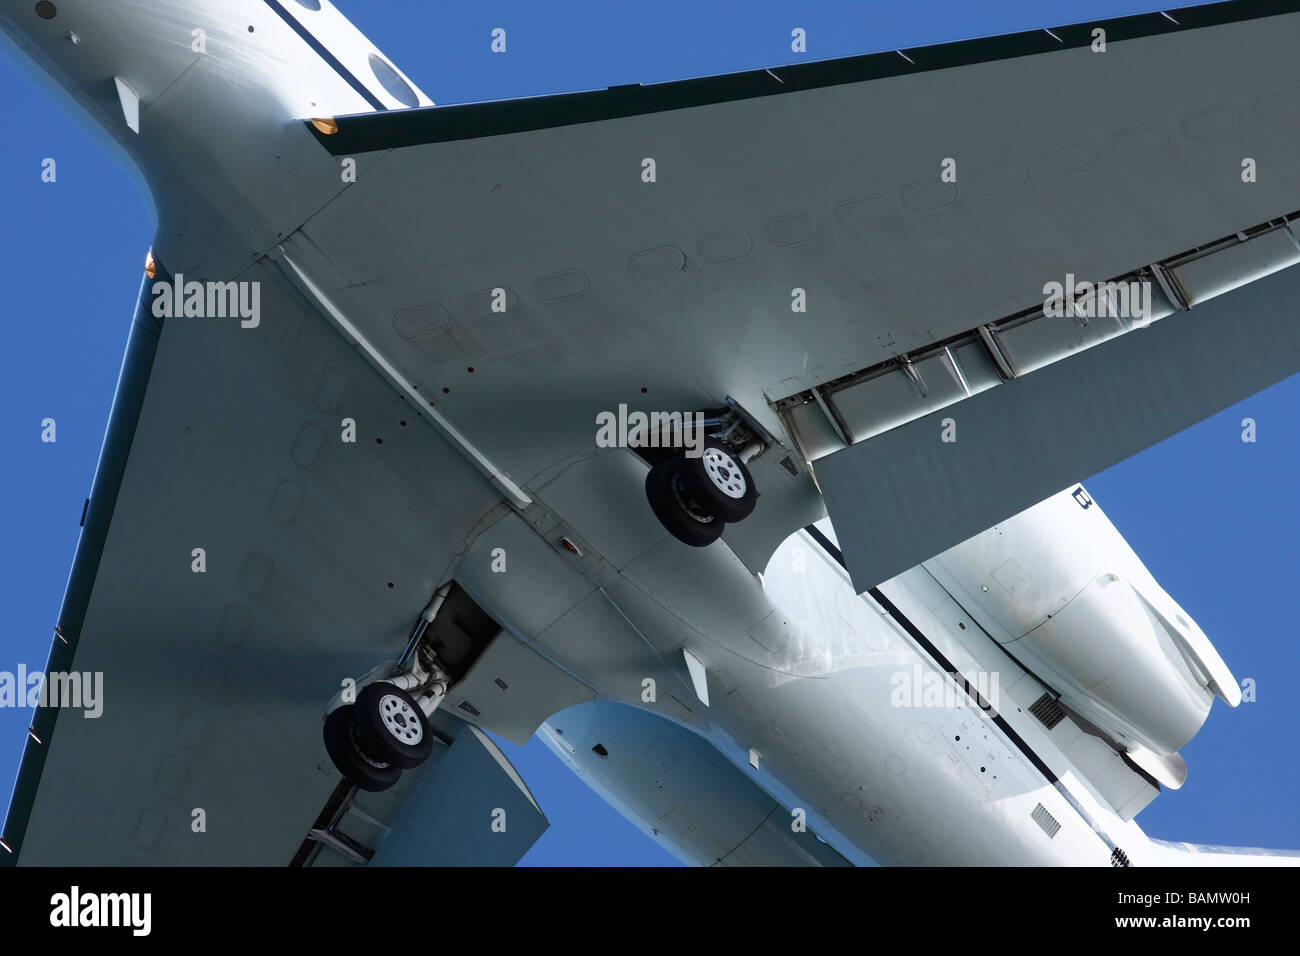 Close up of landing gear on a Gulfstream Aerospace G-IV jet. - Stock Image